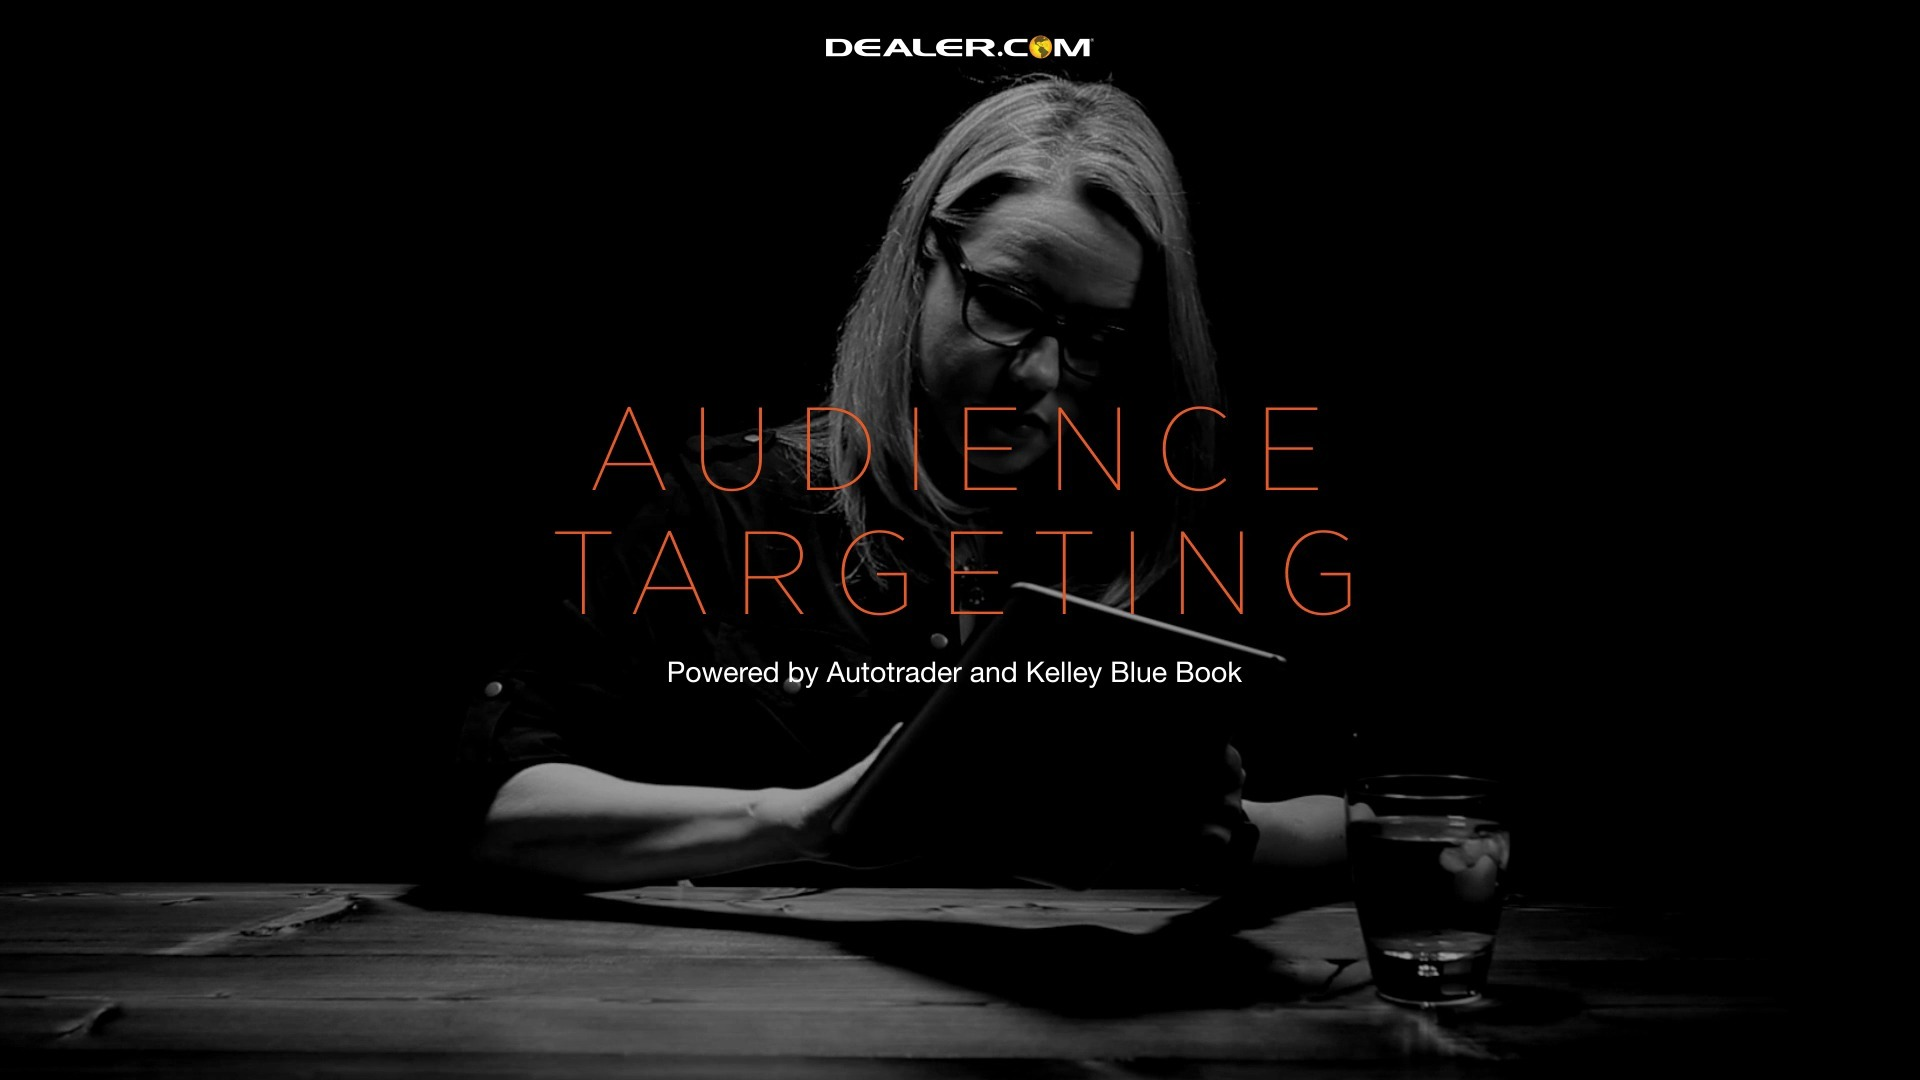 Audience Targeting - DDC/AT/KBB (Non - Autoplay)